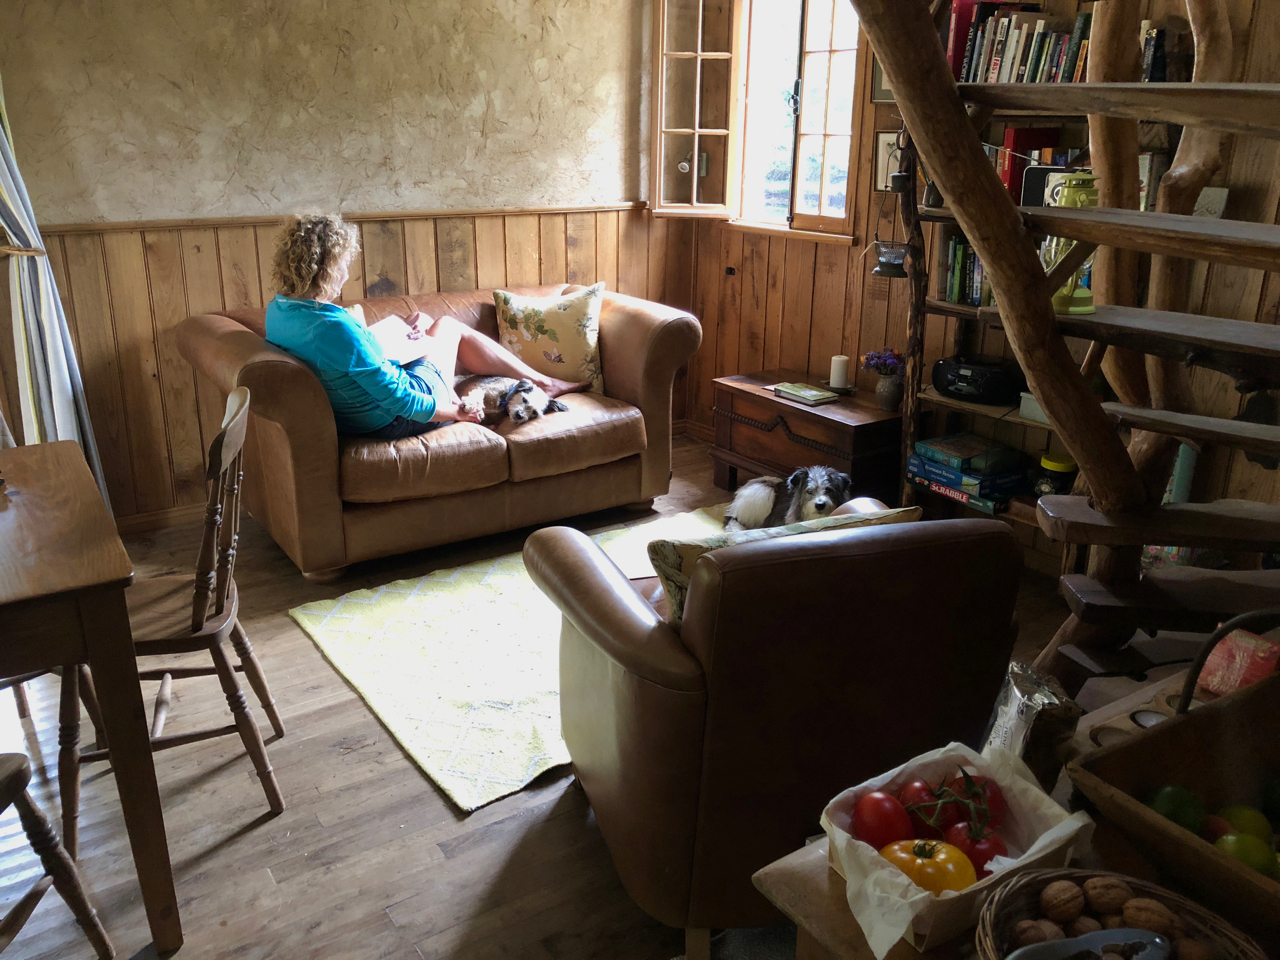 Sitting on the sofa at Poacher's Cabin